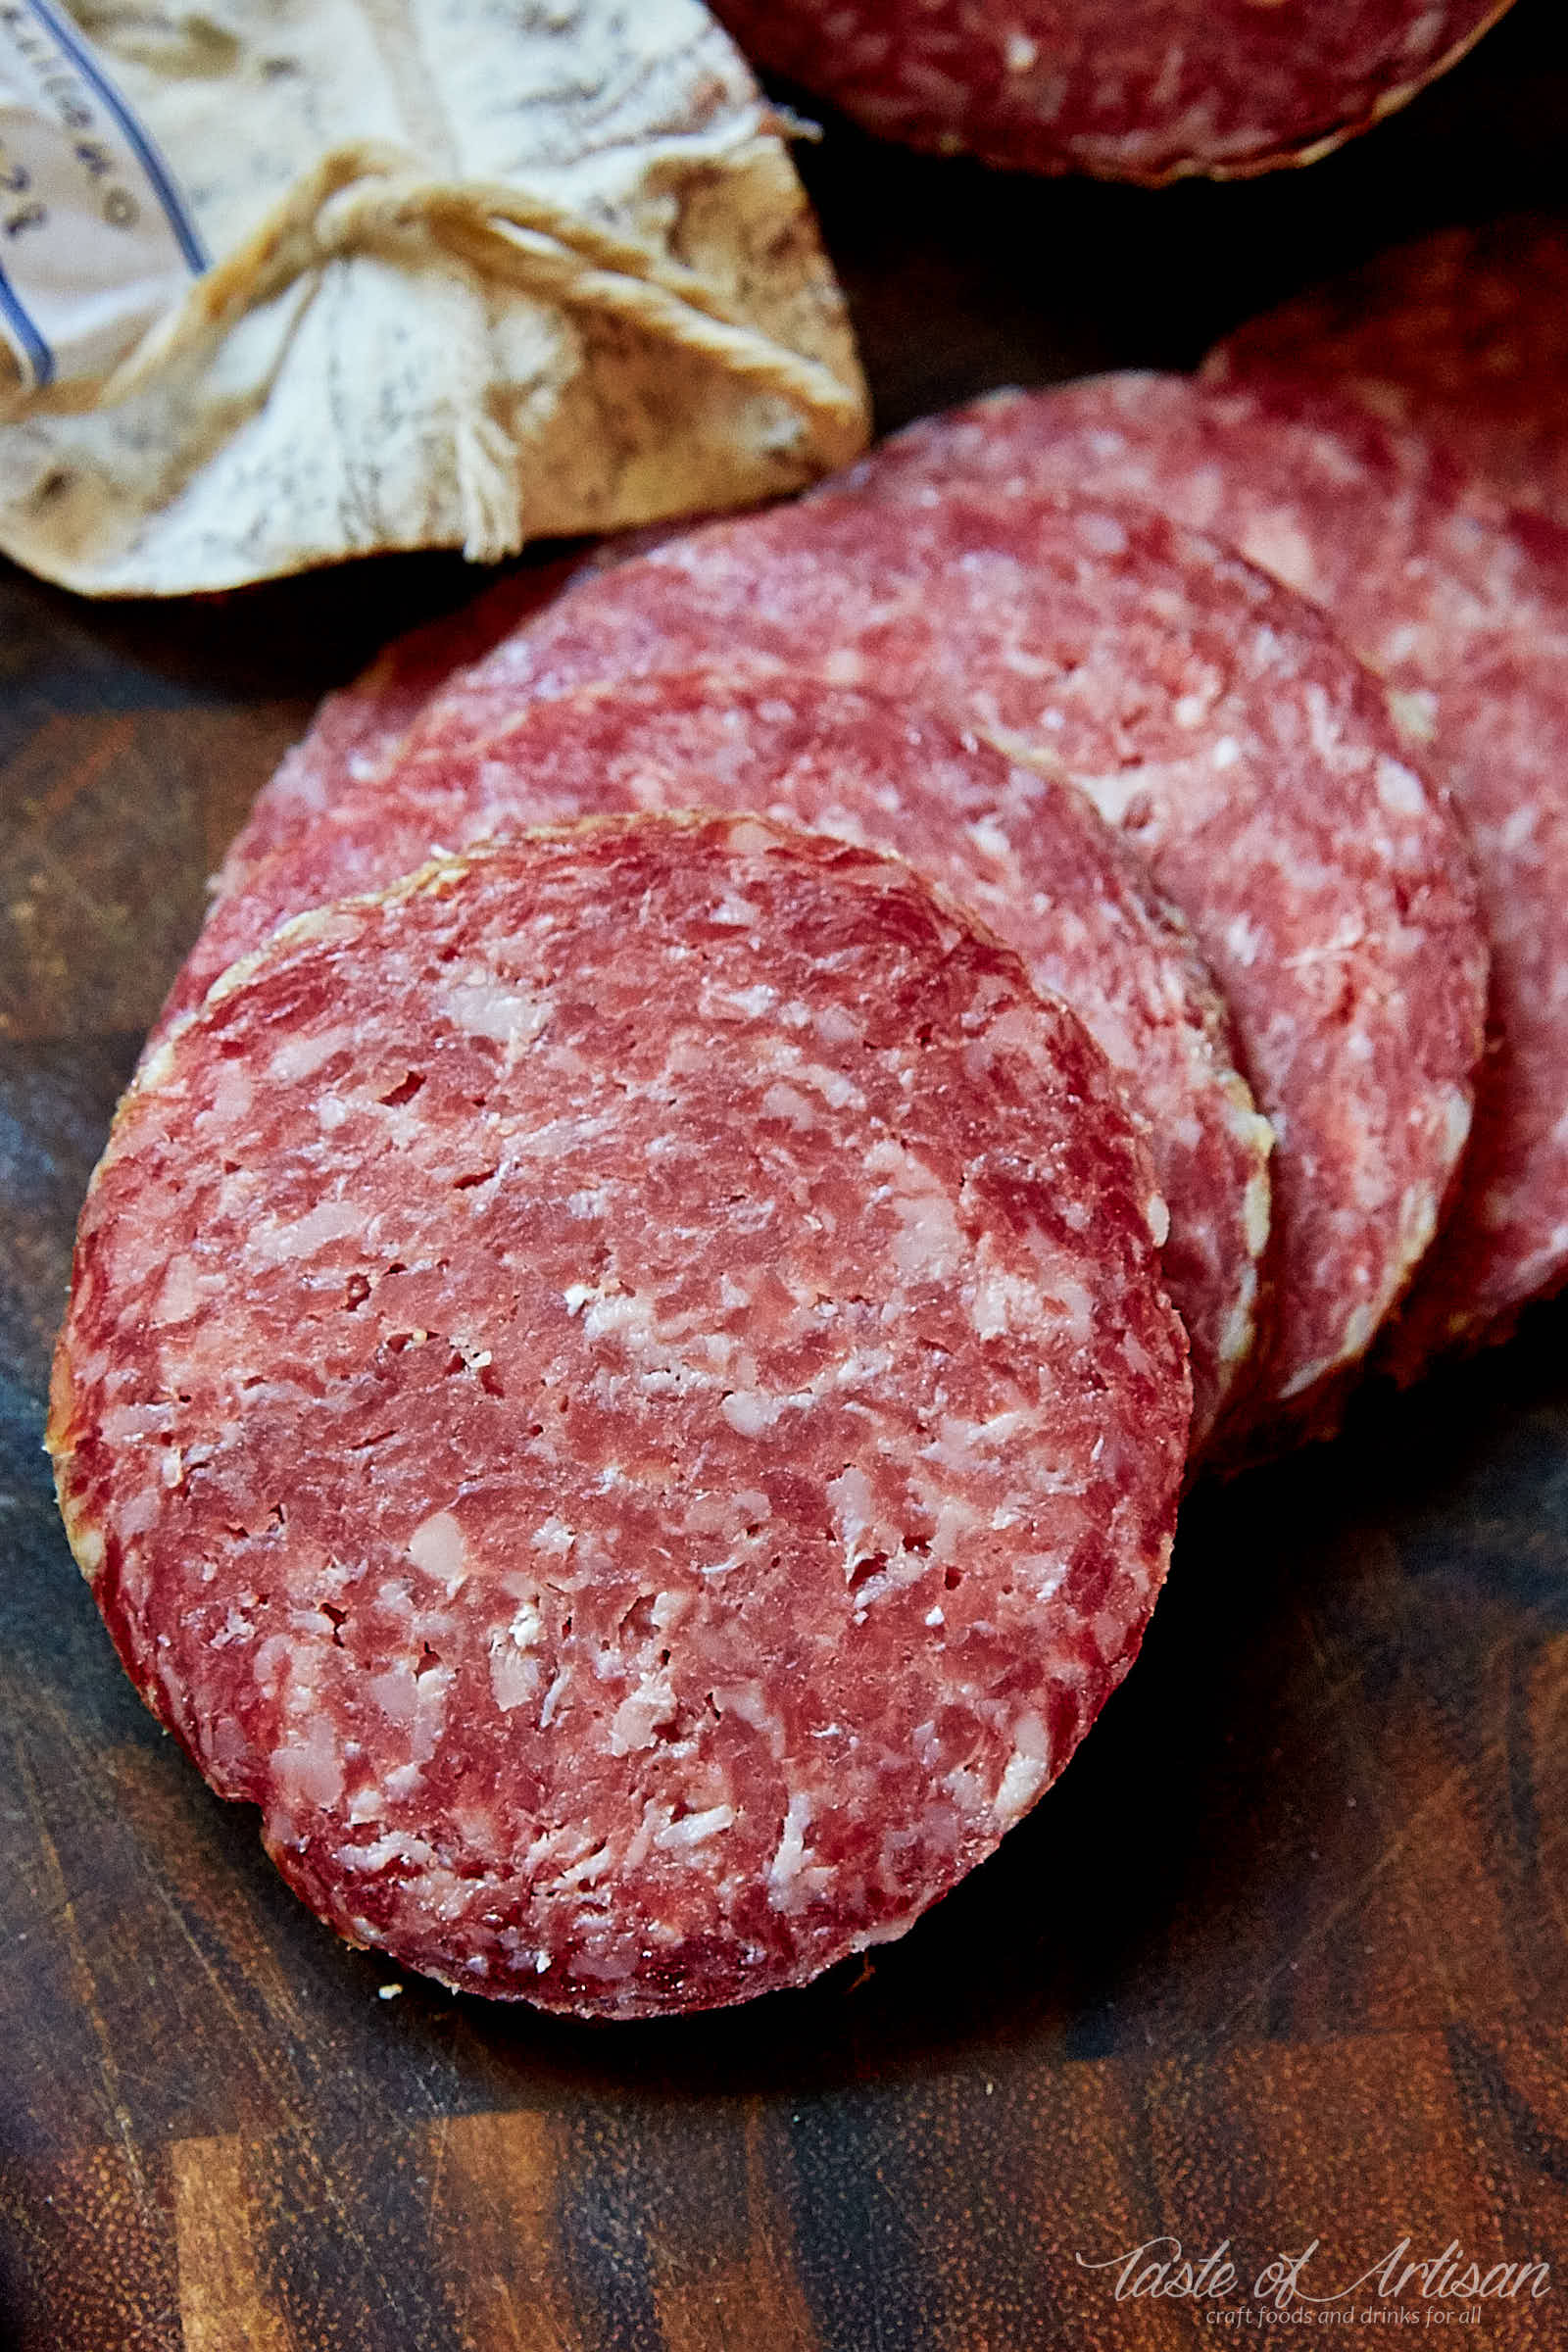 Homemade Milano Salami - Stanley Marianski's recipe for Milano salami, which is essentially the same as Genoa salami. If you are learning how to make salami, this is a good recipe to try. | Taste of Artisan